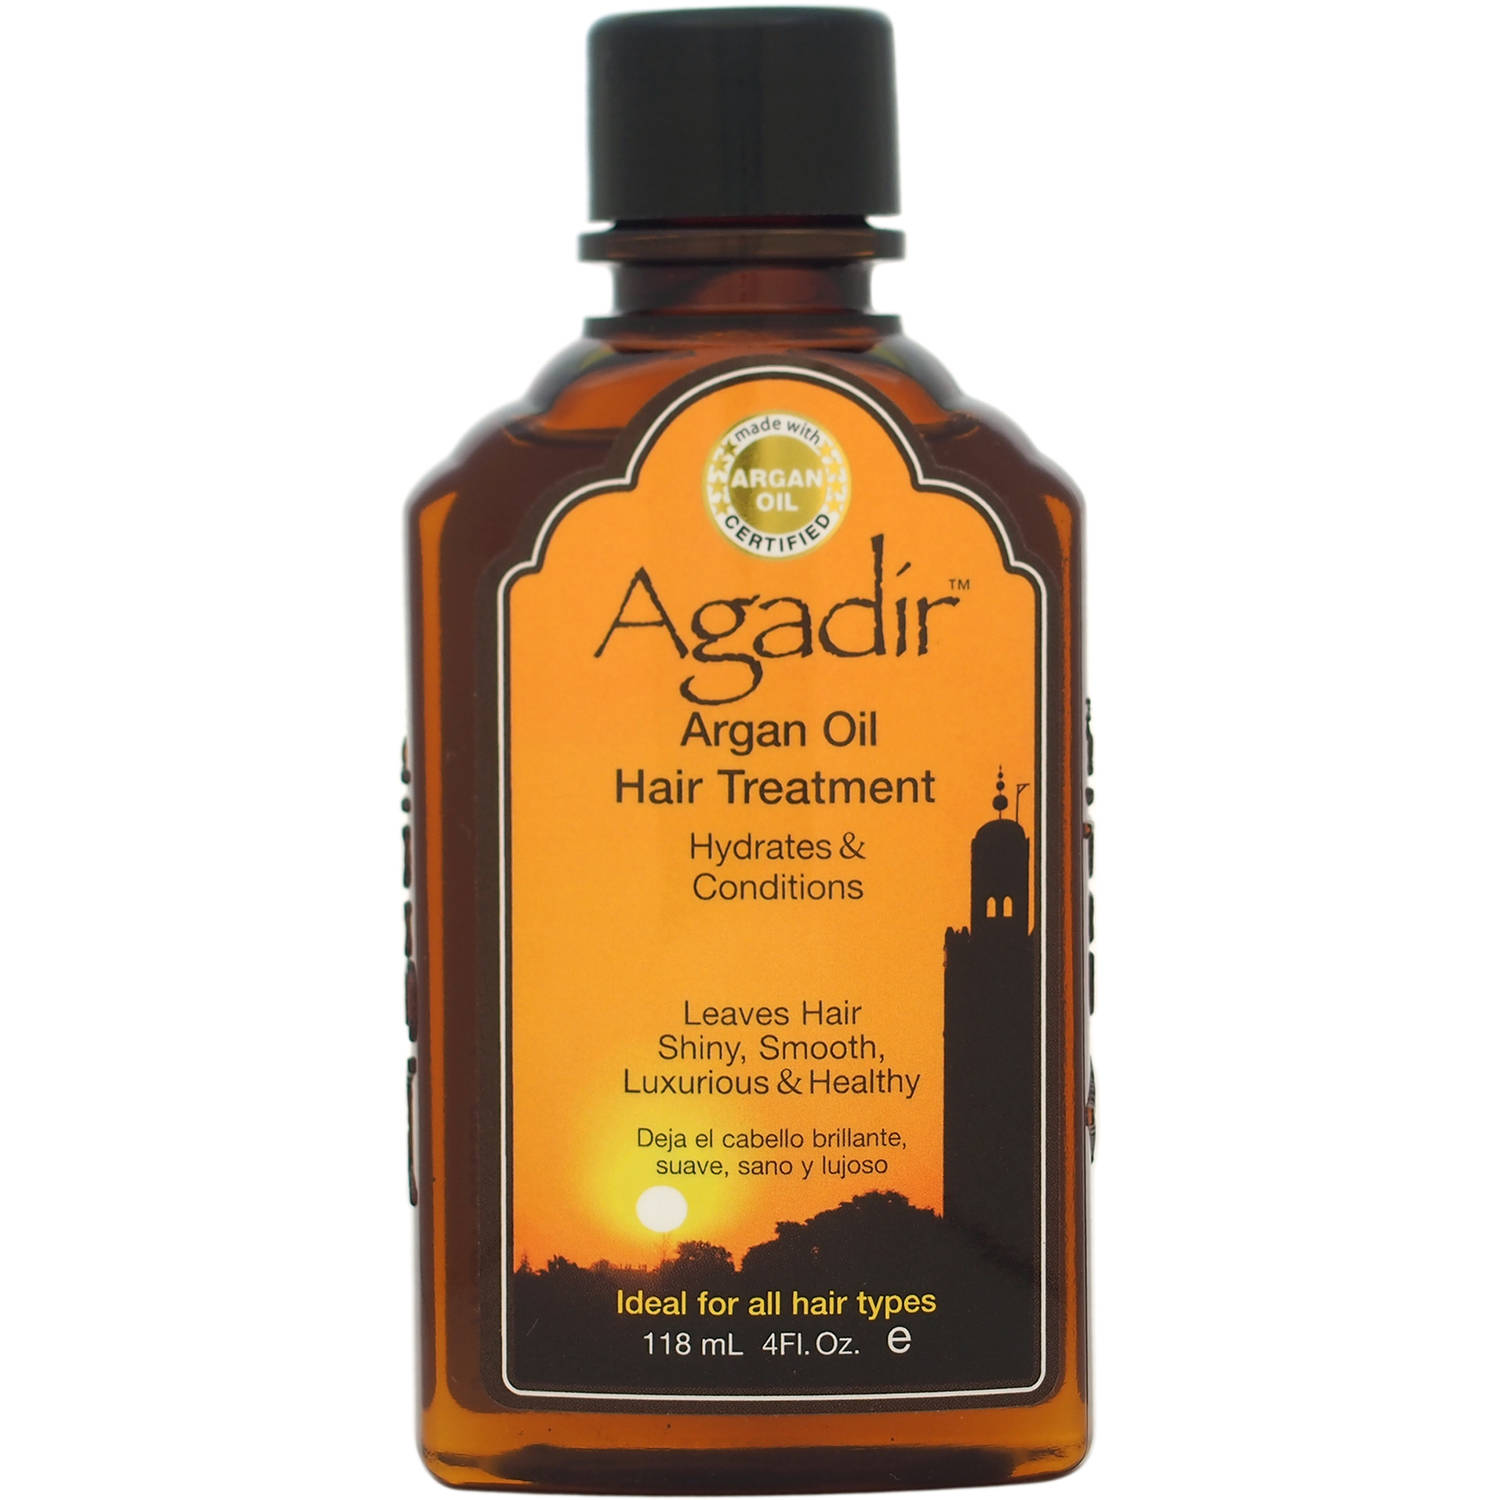 Agadir Unisex Argan Oil Hair Treatment, 4 fl oz